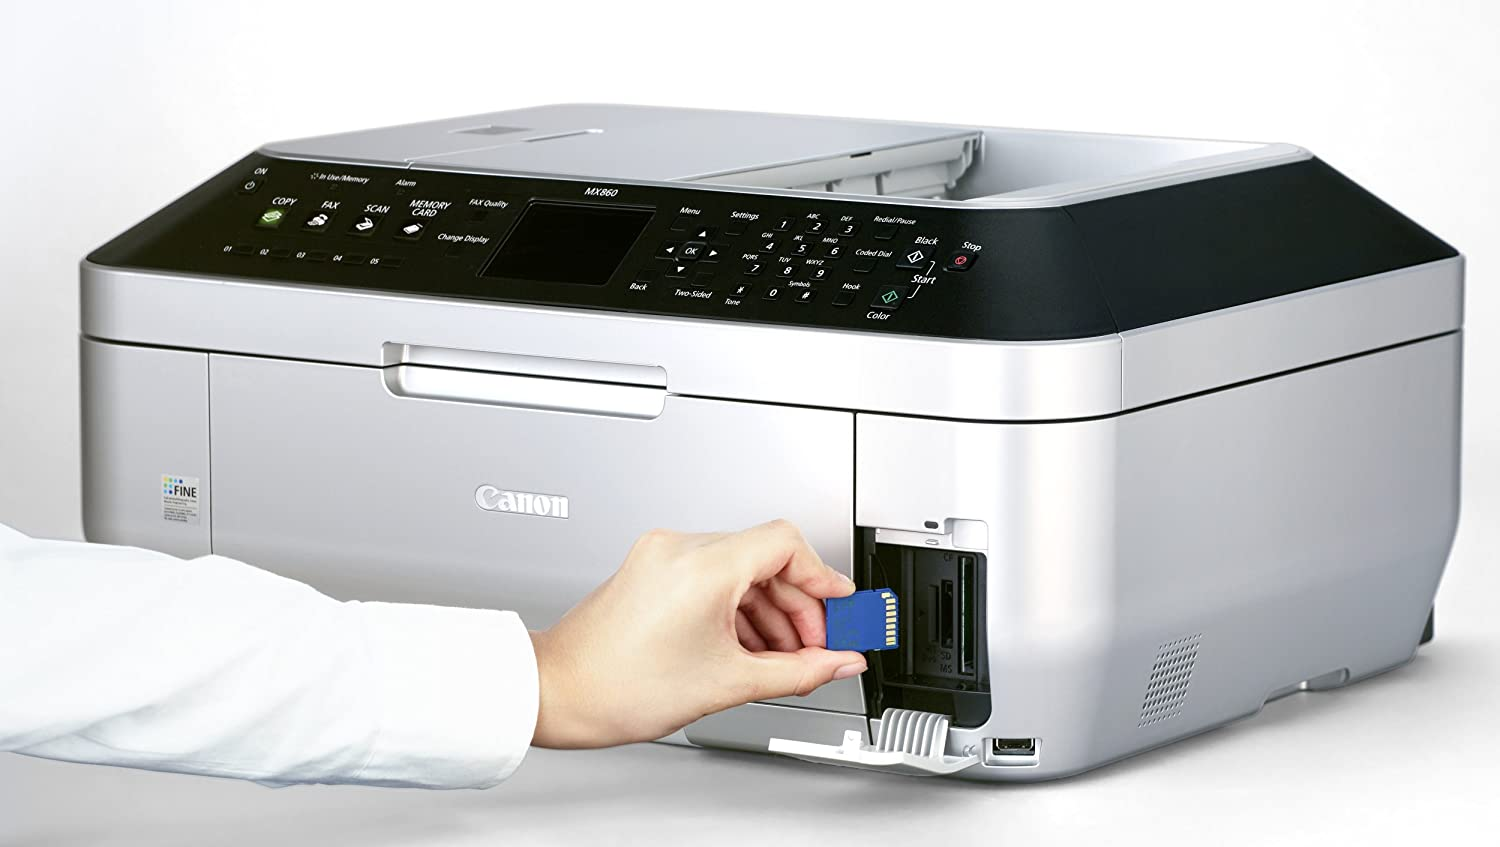 DOWNLOAD DRIVERS: CANON MX868 SCANNER